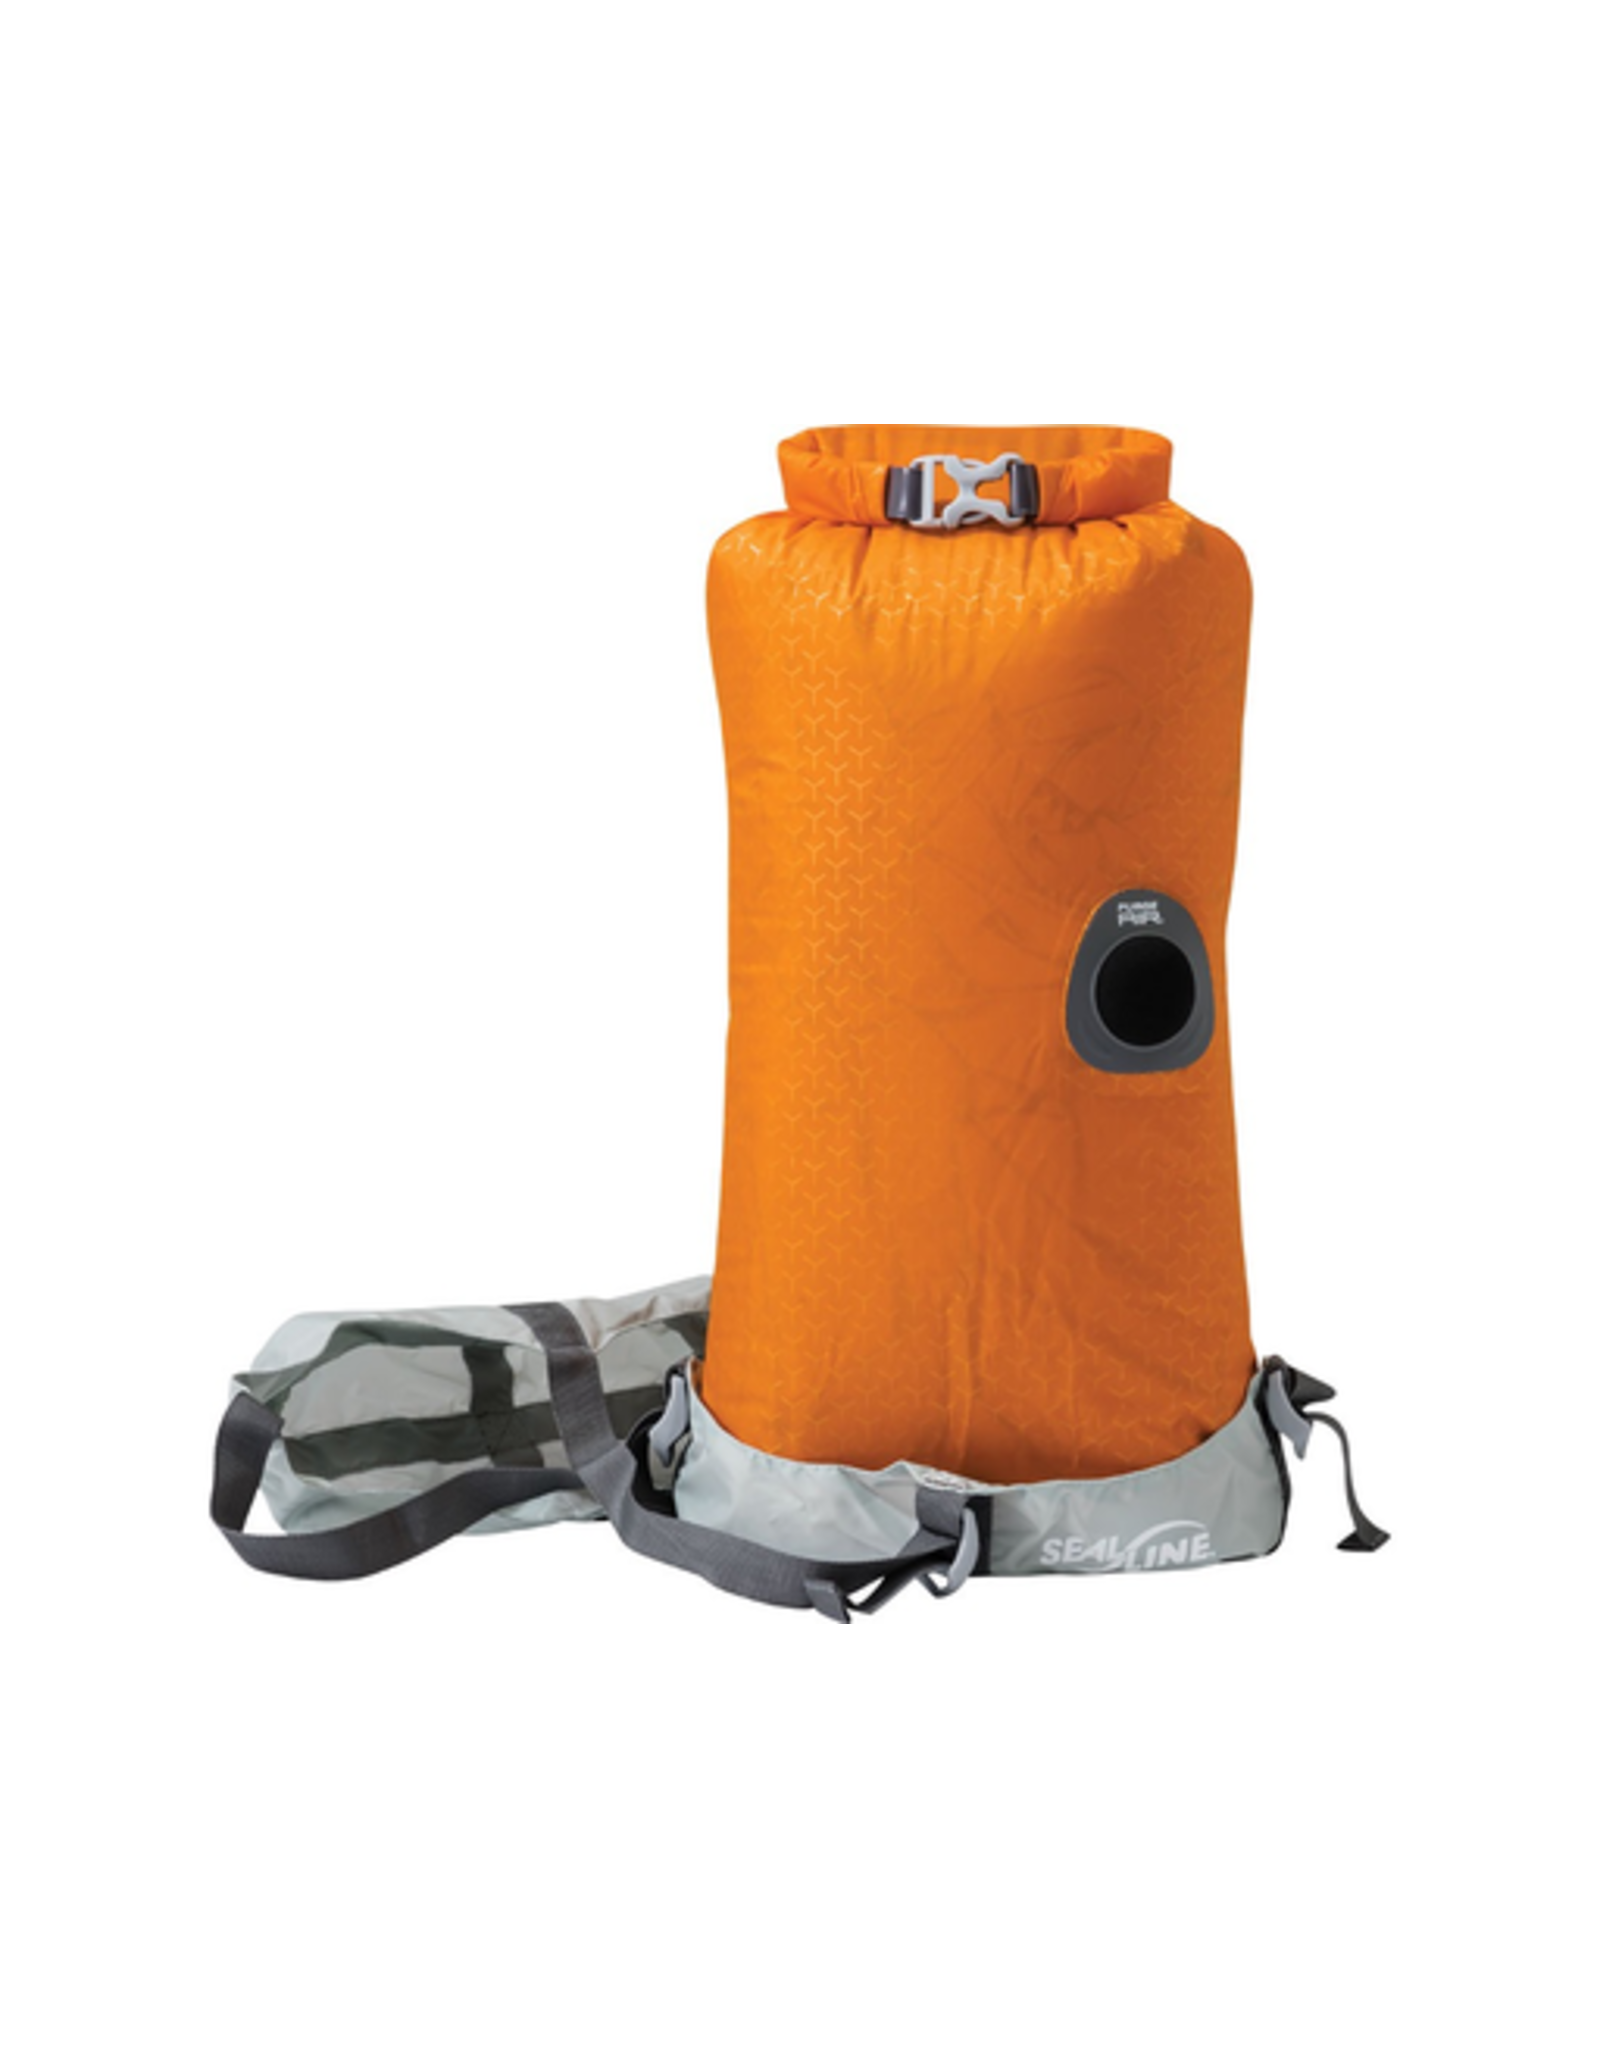 SeaLine SealLine Blocker DRY Compression Sack 30L, Orange